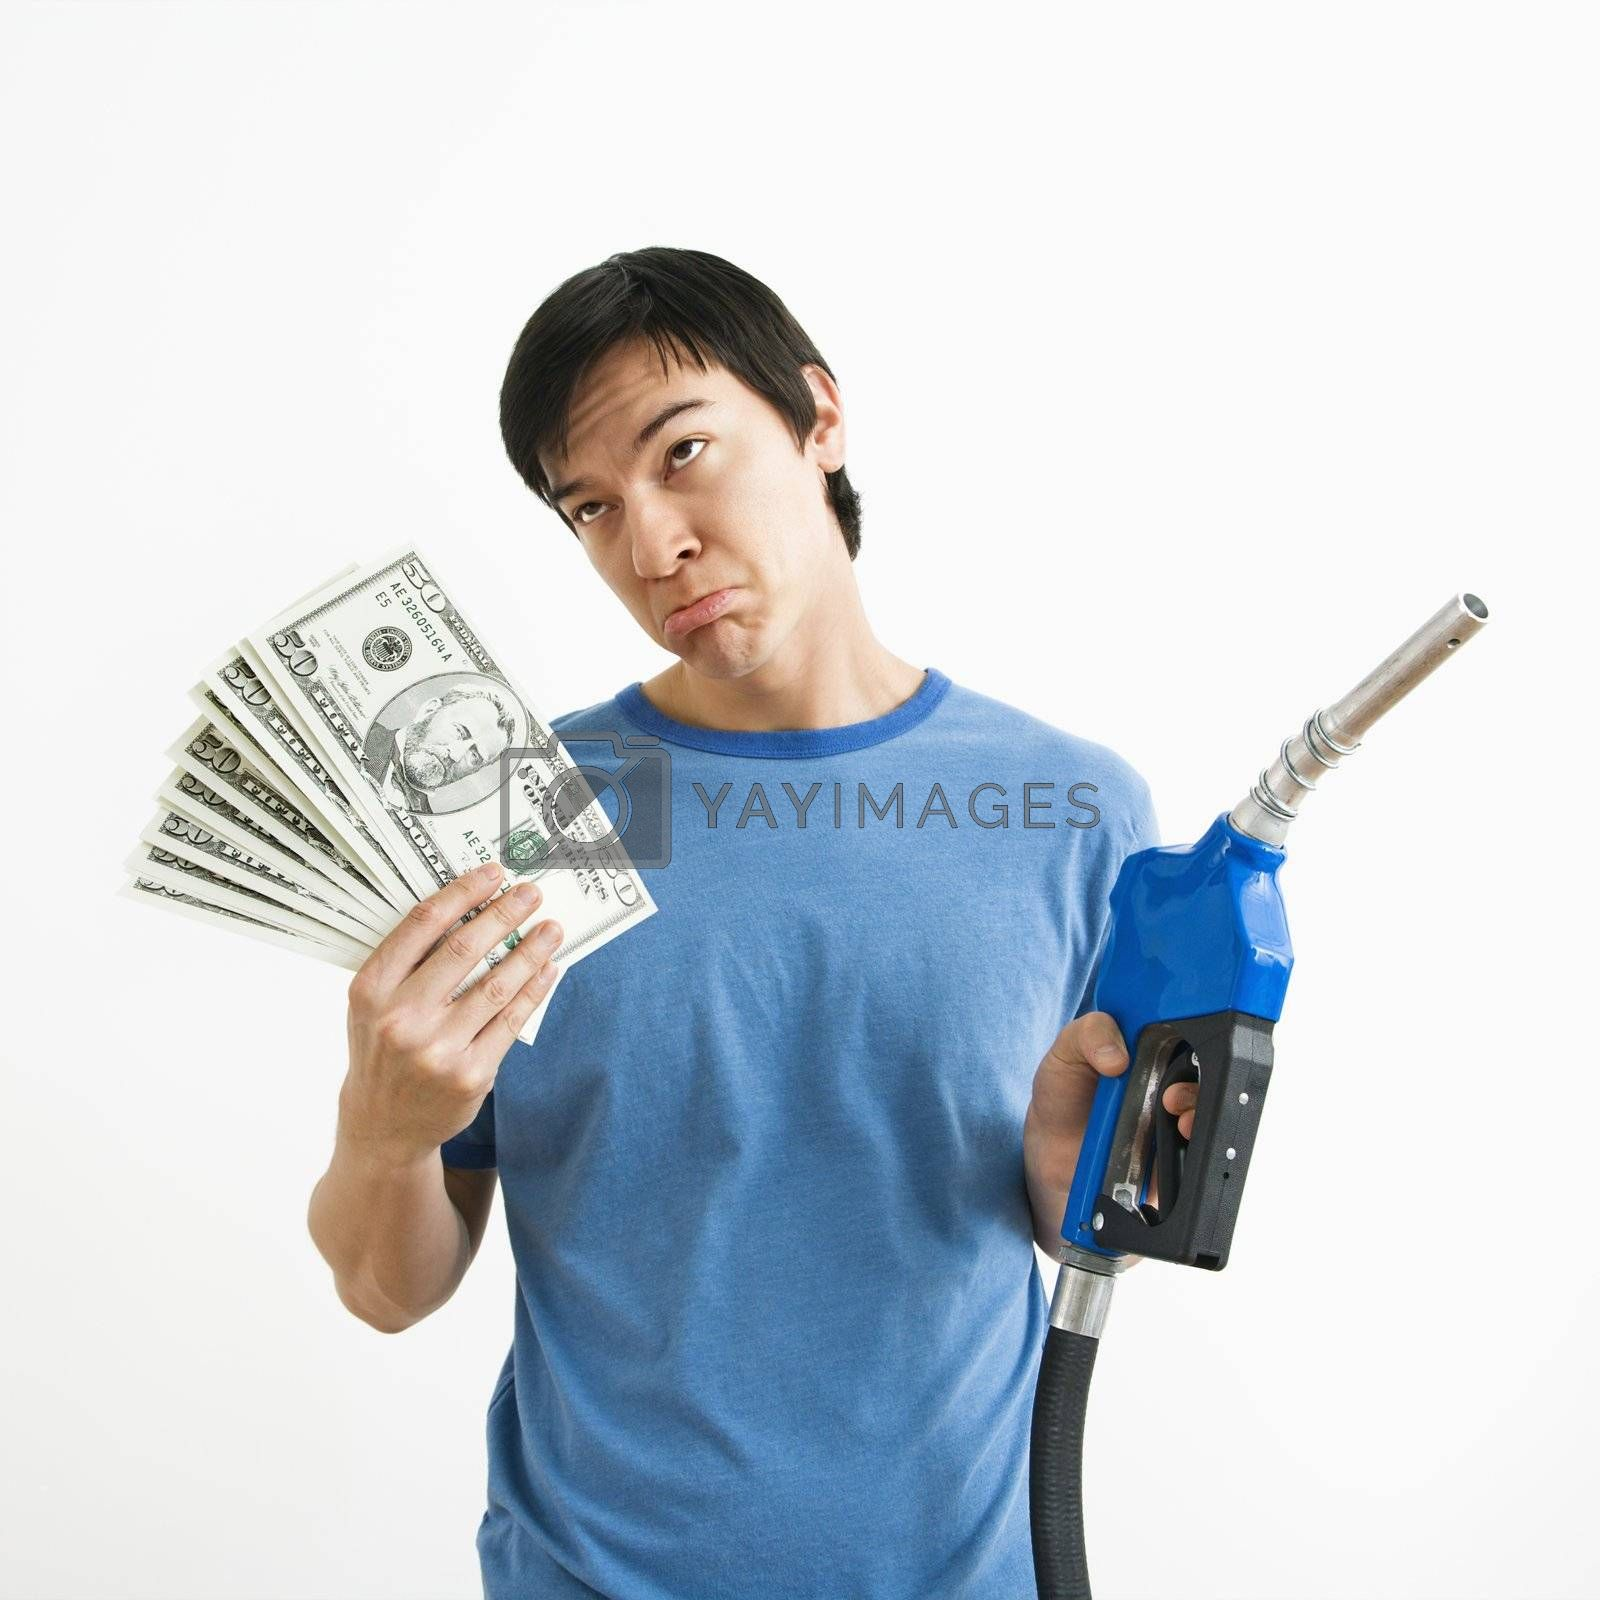 Asian young man with sad expression holding money and gas pump nozzle.